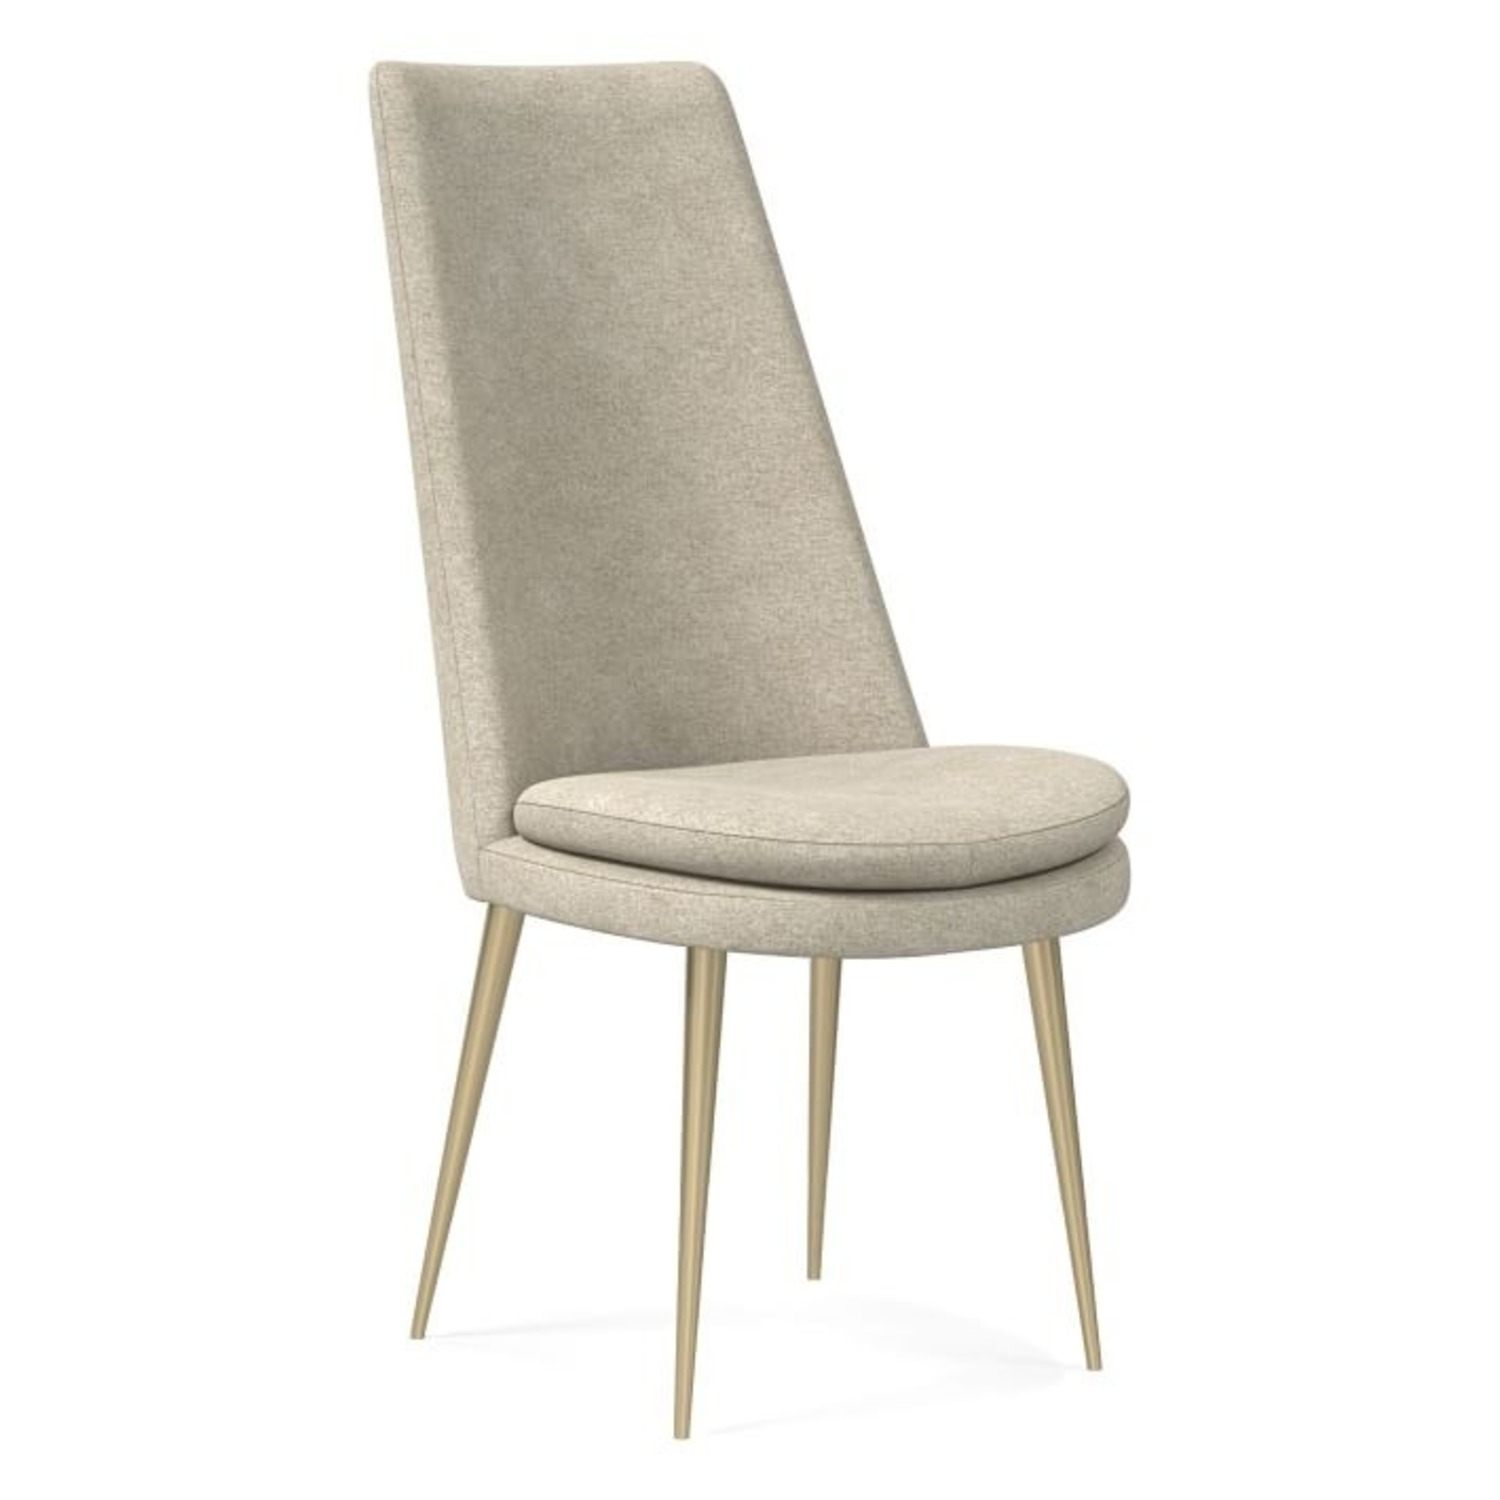 West Elm Finley High Back Dining Chair - image-1